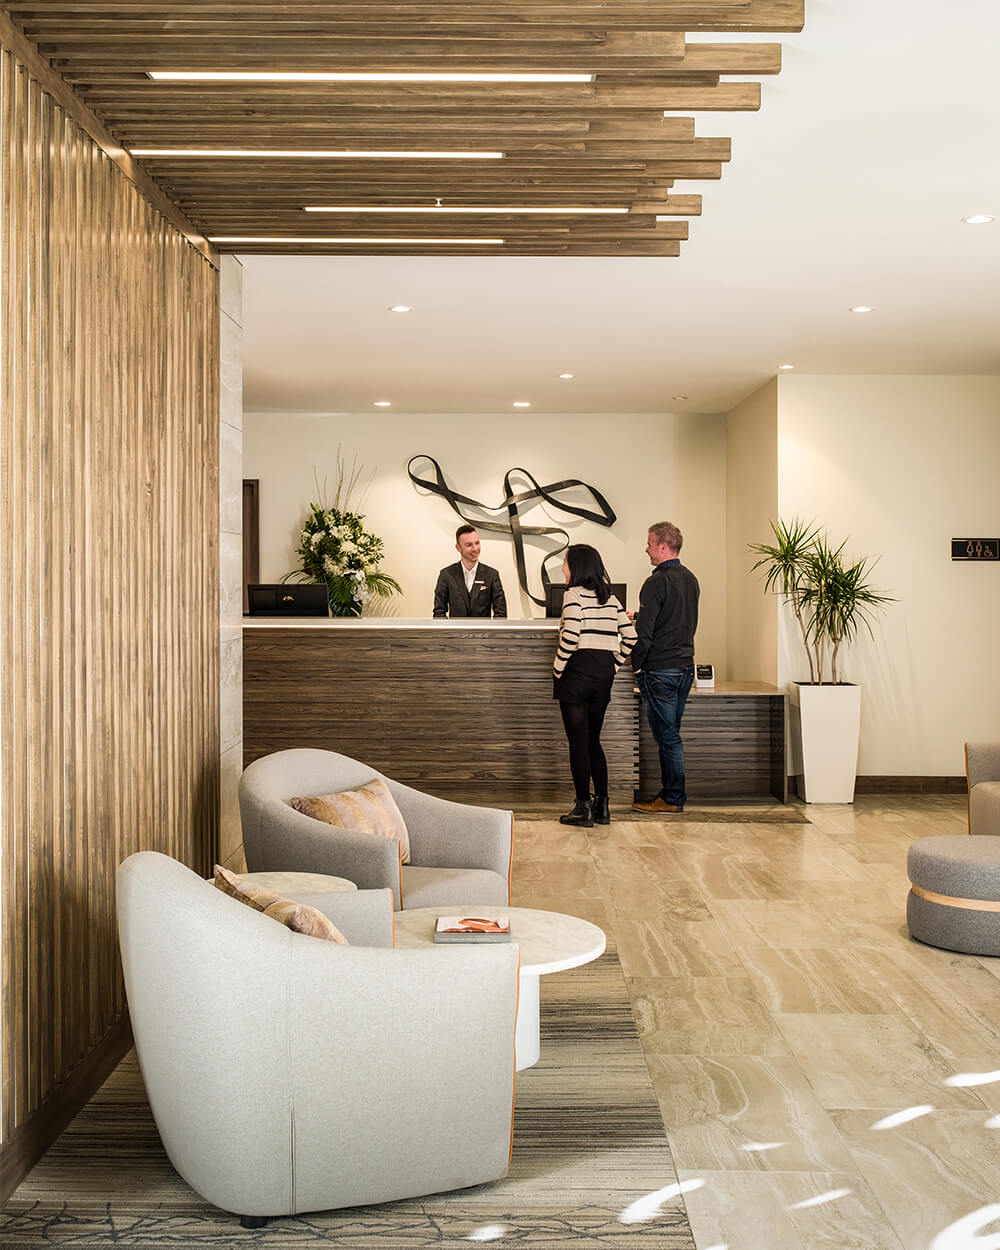 Interiors inspired by the Canterbury landscape